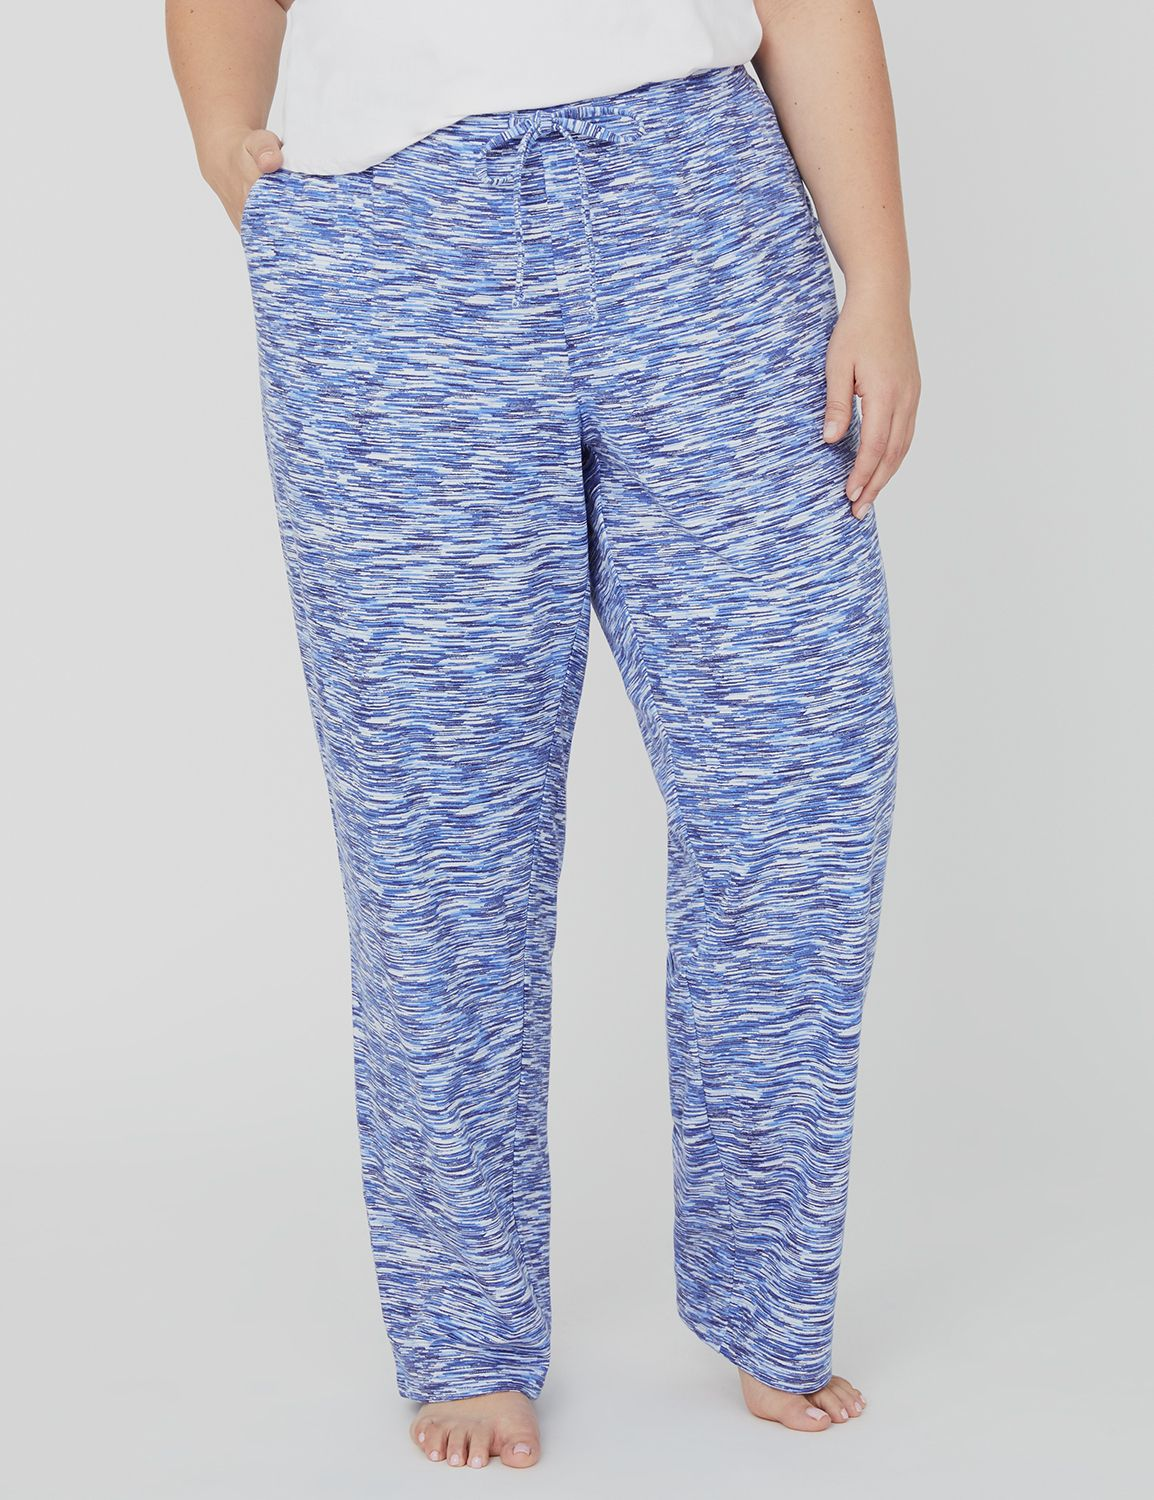 Spacedye Terry Sleep Pant 1088019 Cold/Temp A/O Printed Space MP-300096254